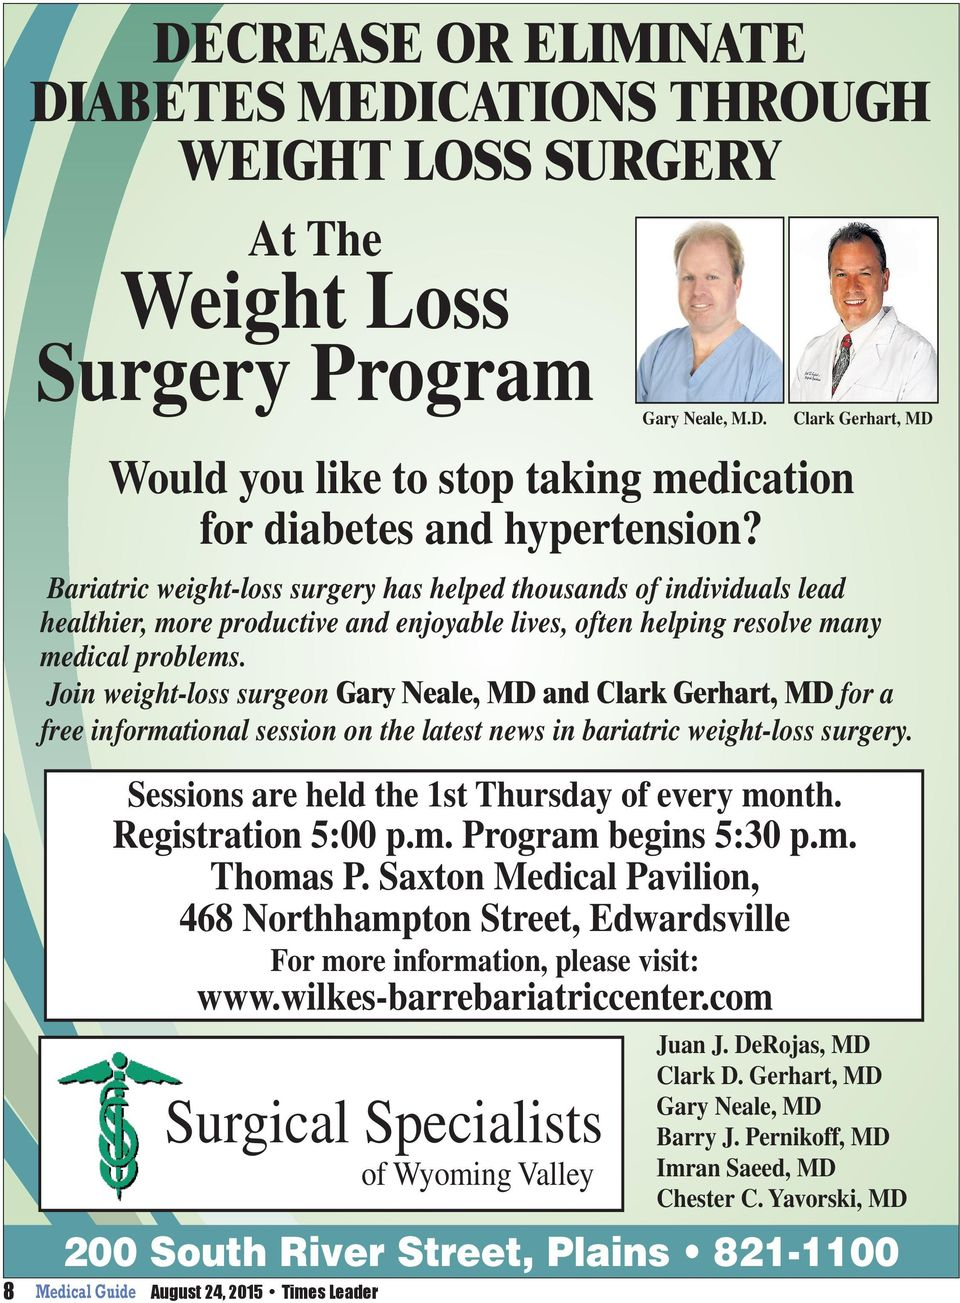 com Surgical Specialists of Wyoming Valley 200 South River Street, Plains 821-1100 August 24, 2015 Times Leader Gary Neale, M.D. Would you like to stop taking medication for diabetes and hypertension?